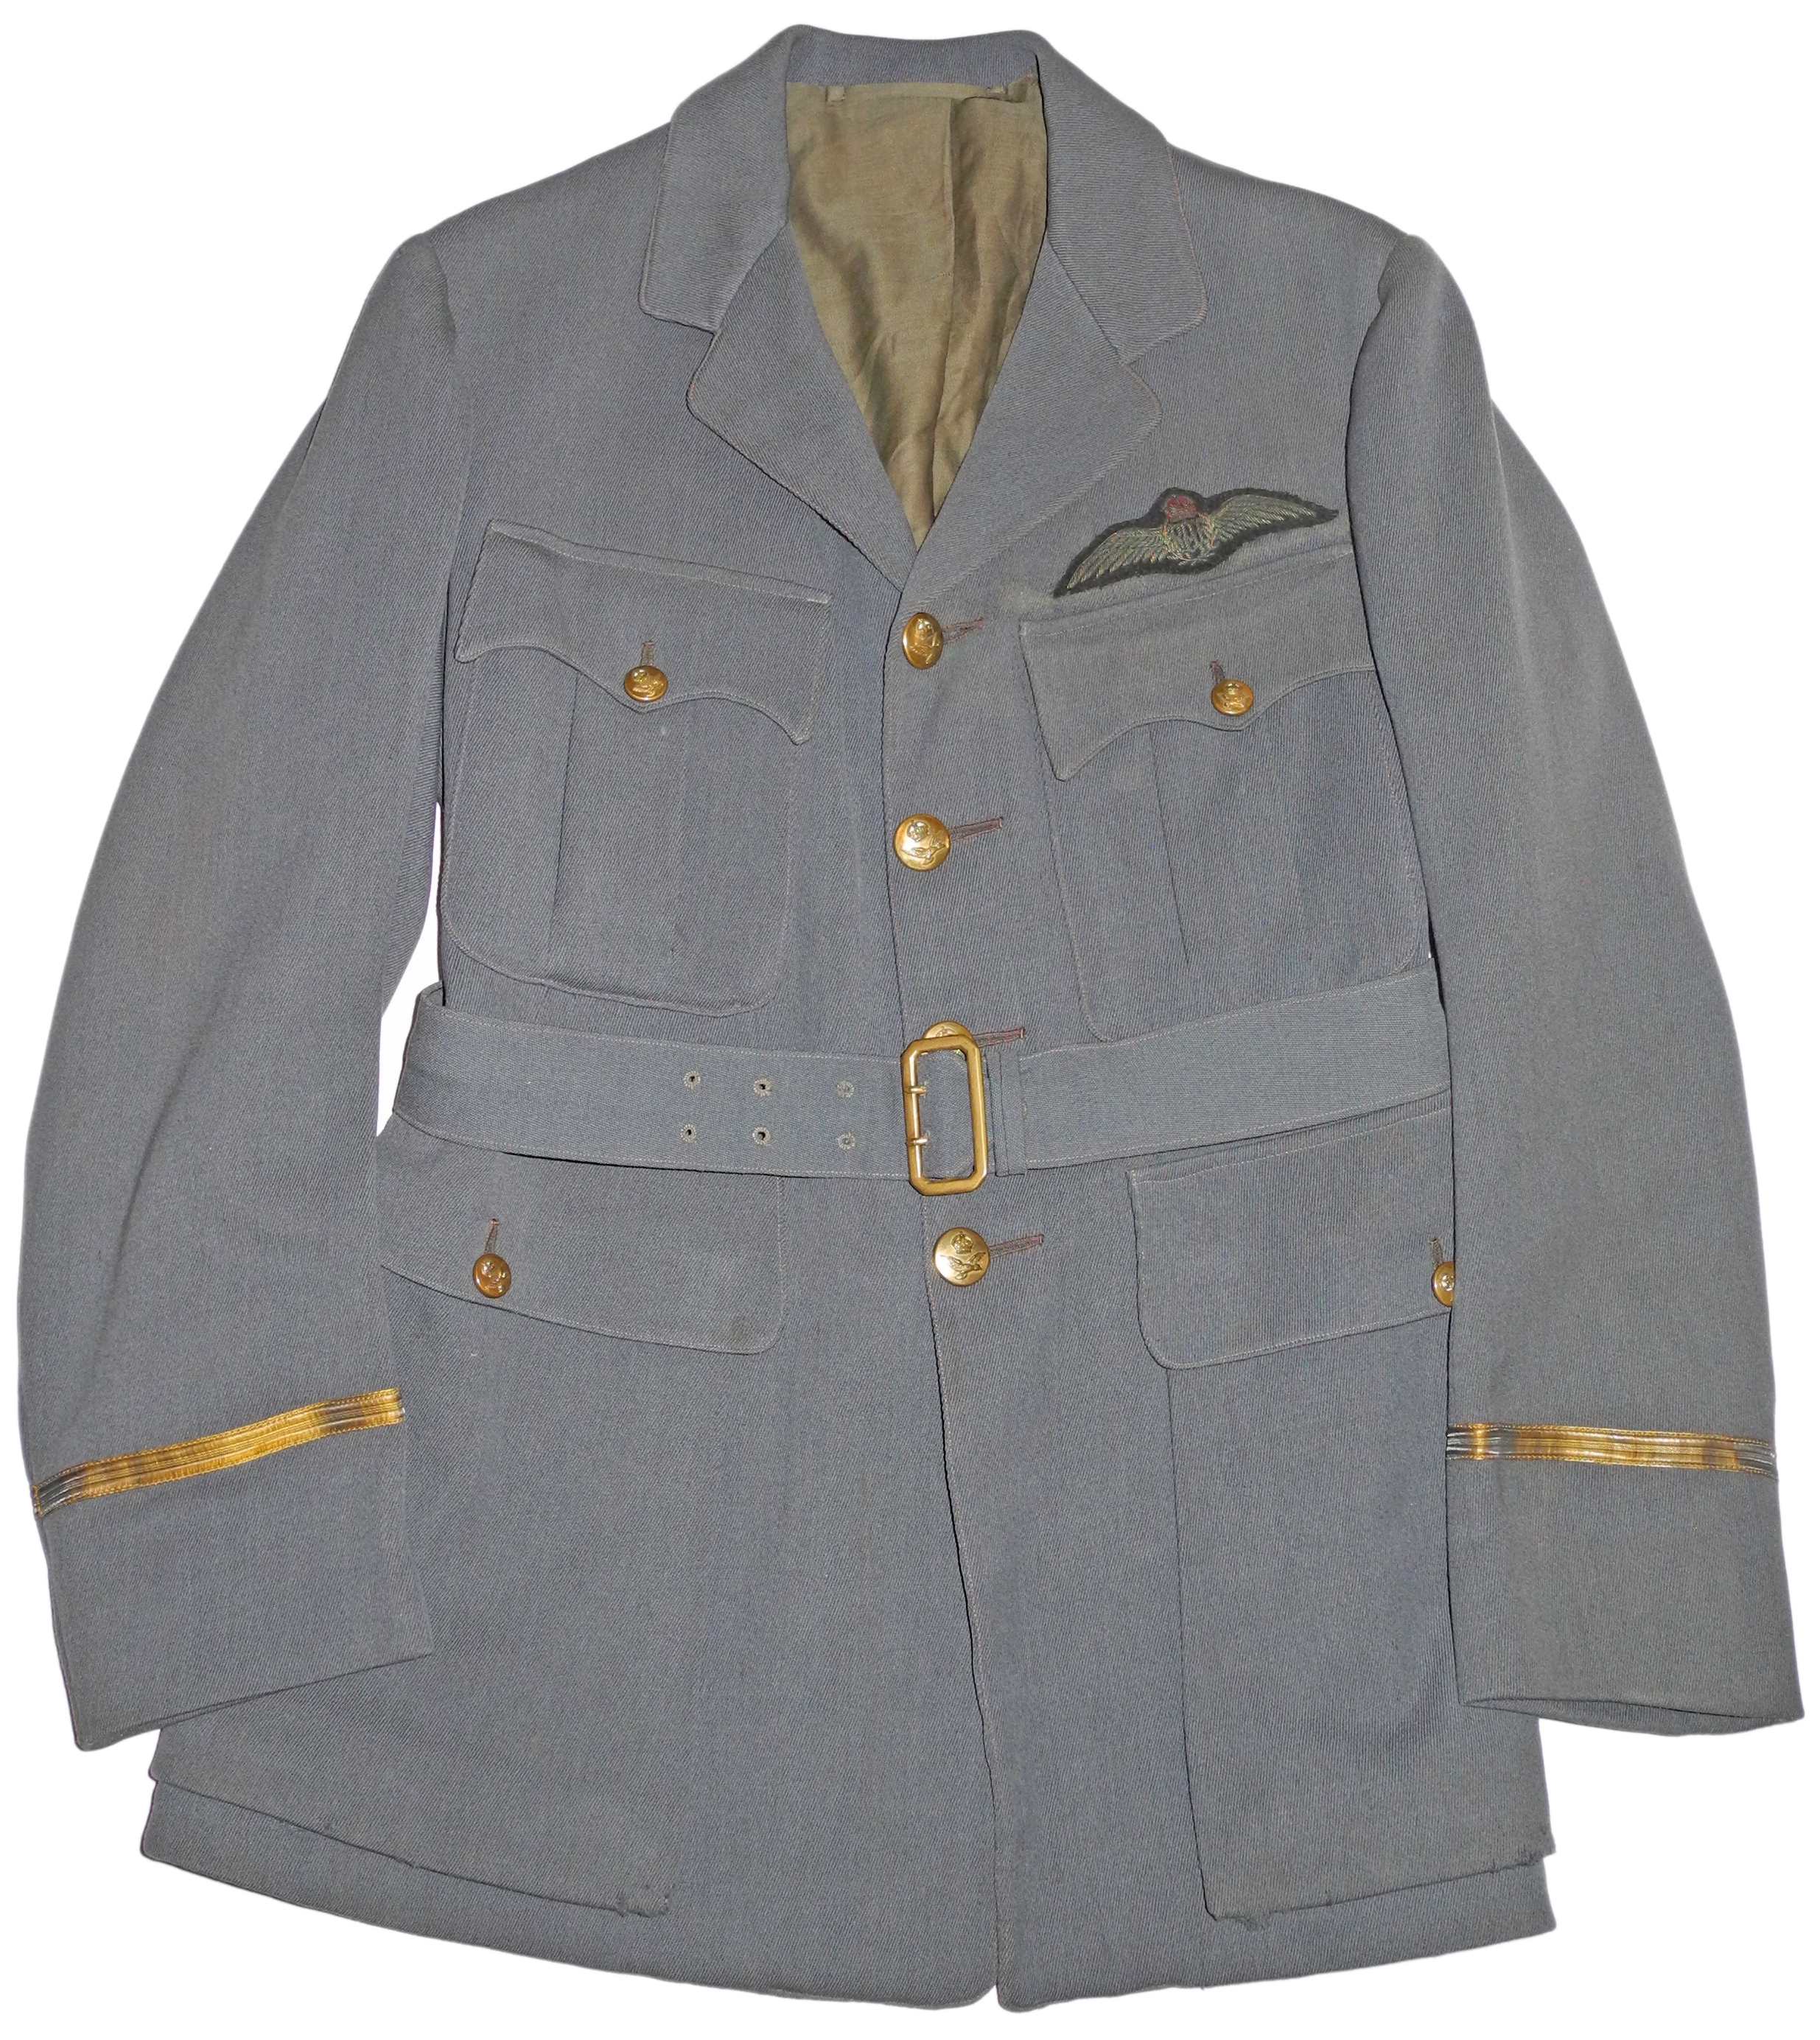 1918 Pattern RAF officer's Service Dress tunic in Russian blue.